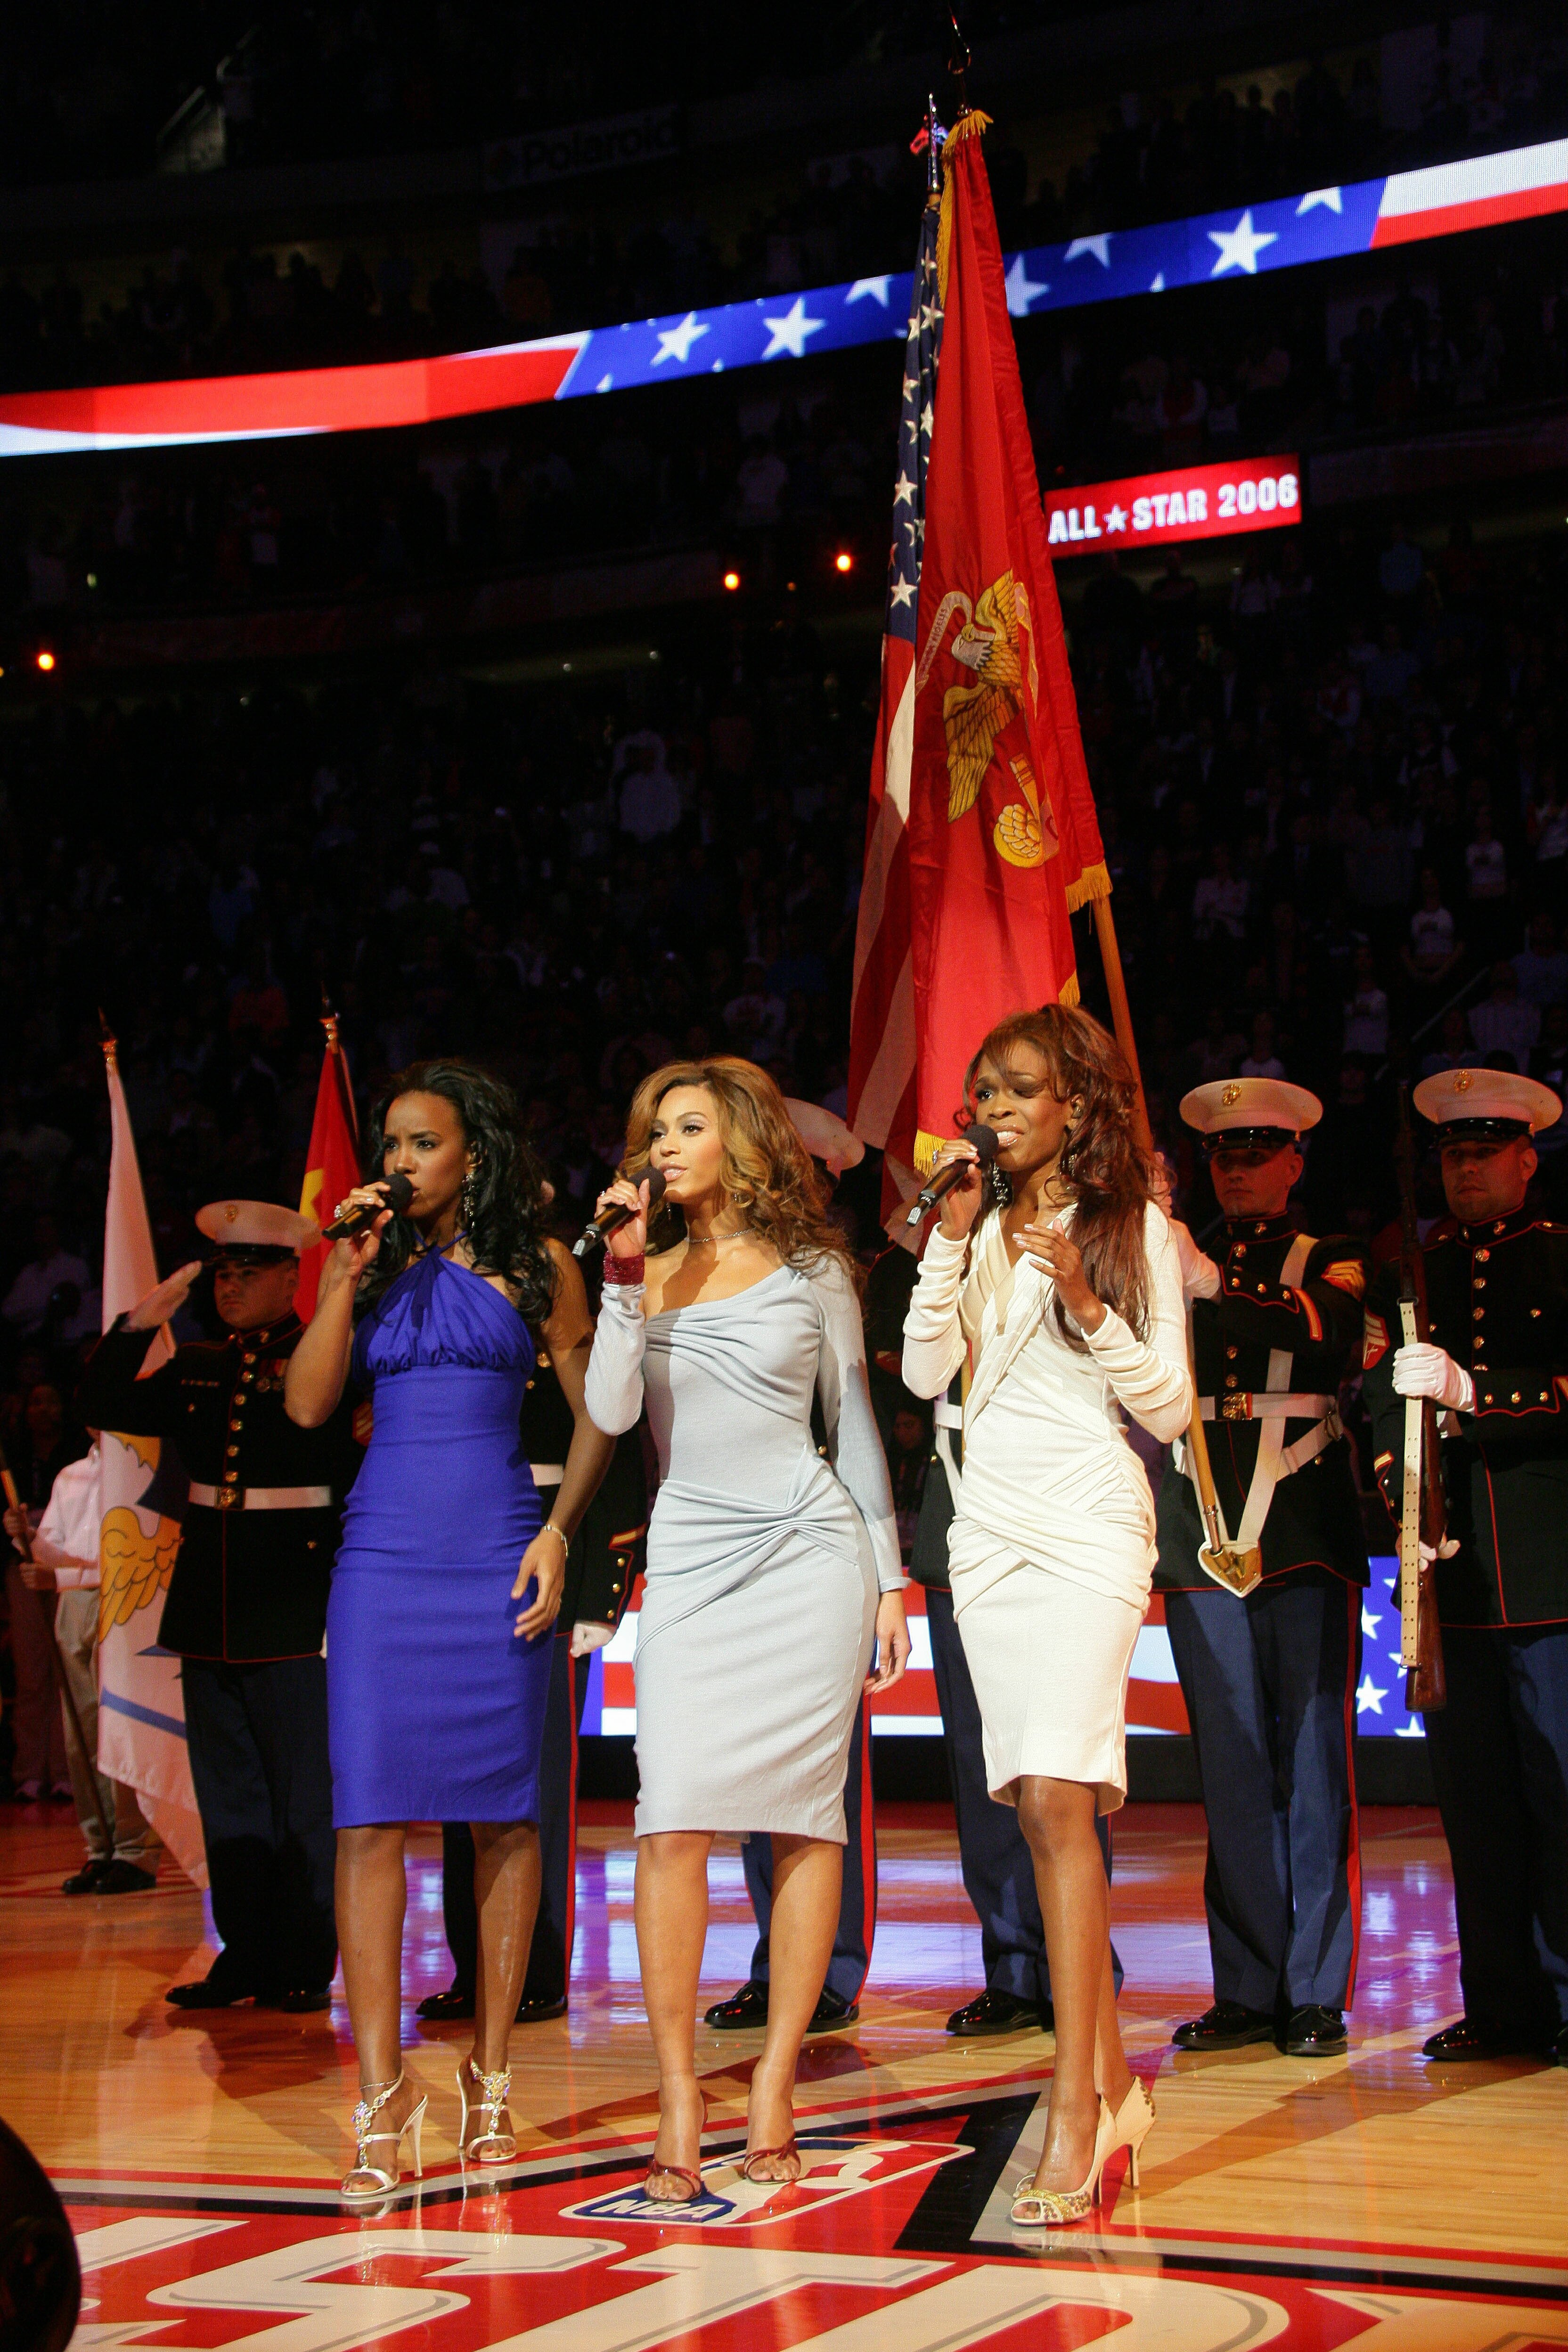 Kelly Rowland, Beyonce Knowles and Michelle Williams of the group Destiny's Child perform the National Anthem prior to the 2006 NBA All-Star Game February 19, 2006 at the Toyota Center | Photo: Getty Images